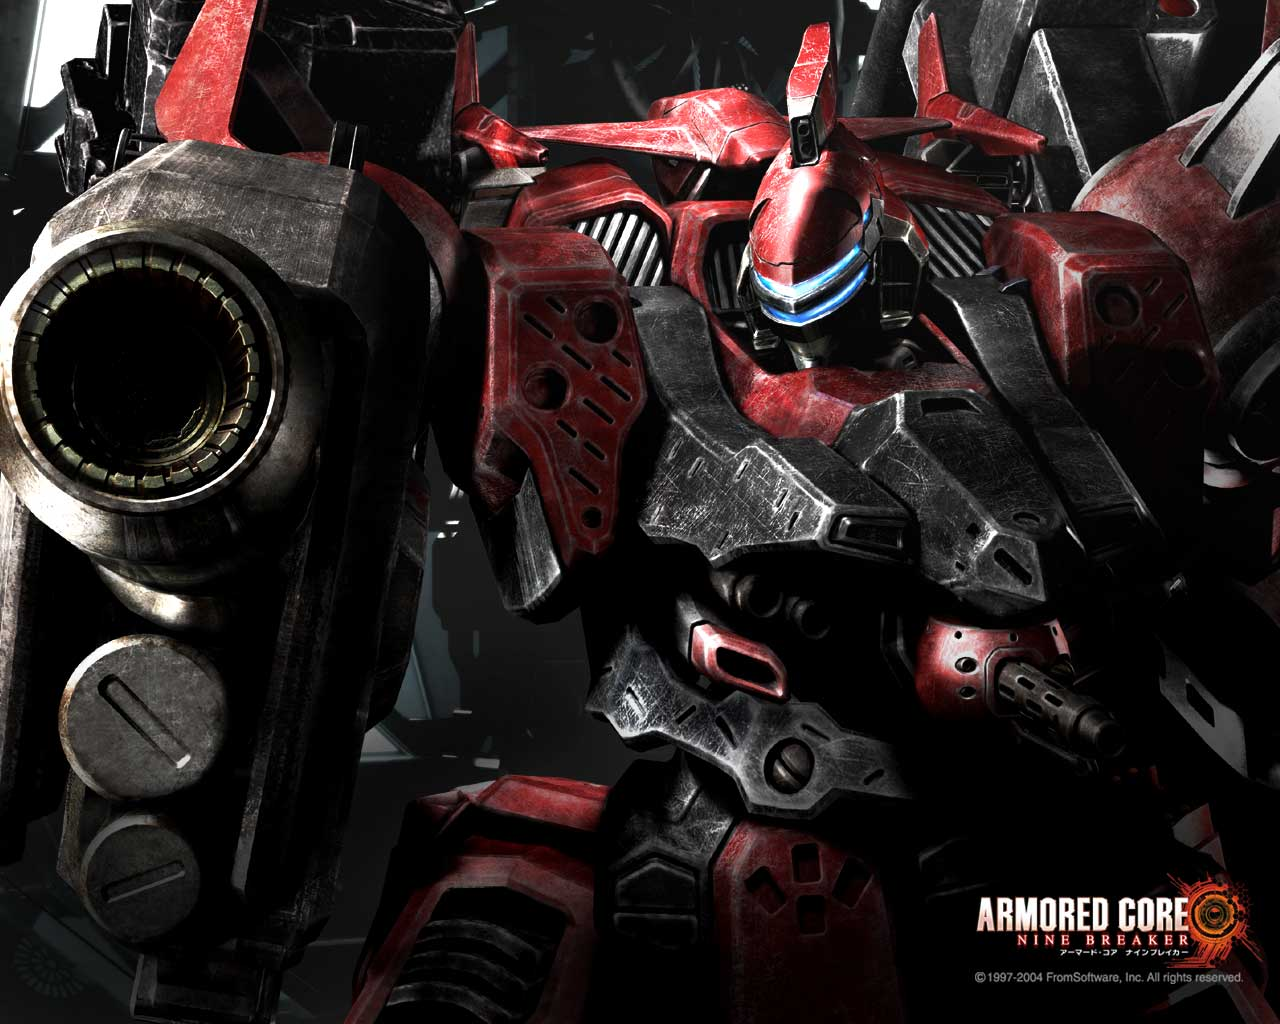 Armored Kodakan Armored Core Nine Breaker 01 1280 1024